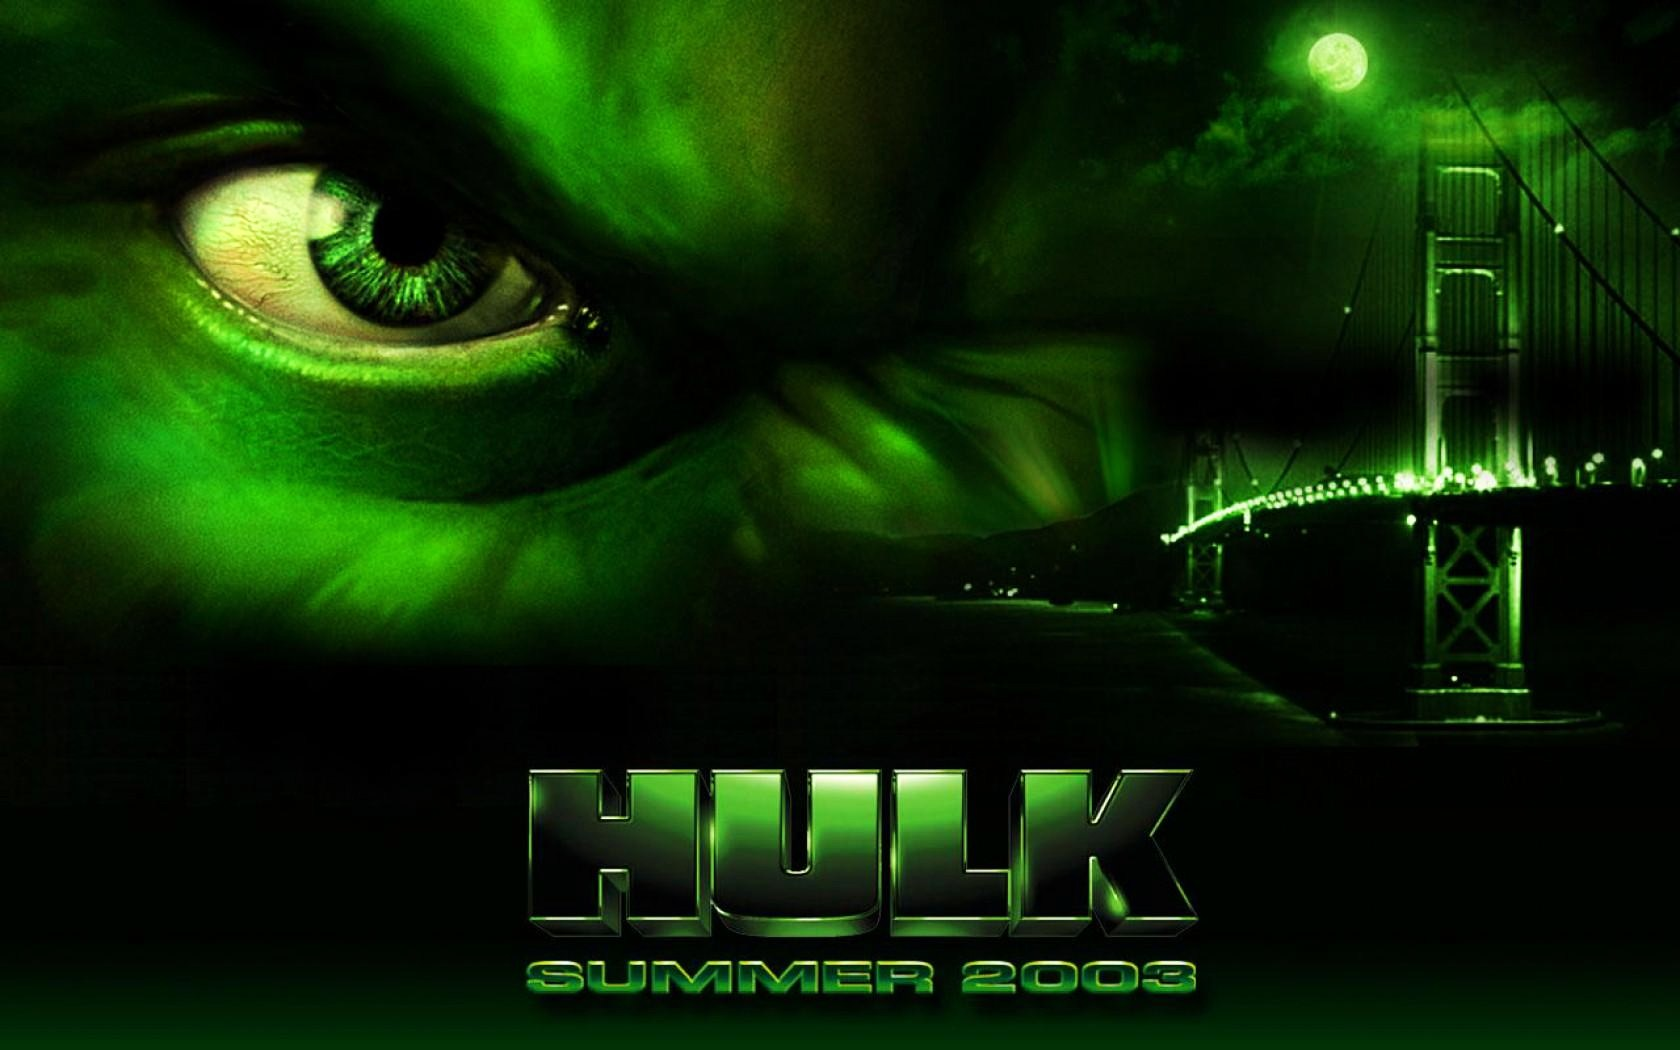 The Hulk Wallpaper   The Incredible Hulk Wallpaper 31051336 1680x1050